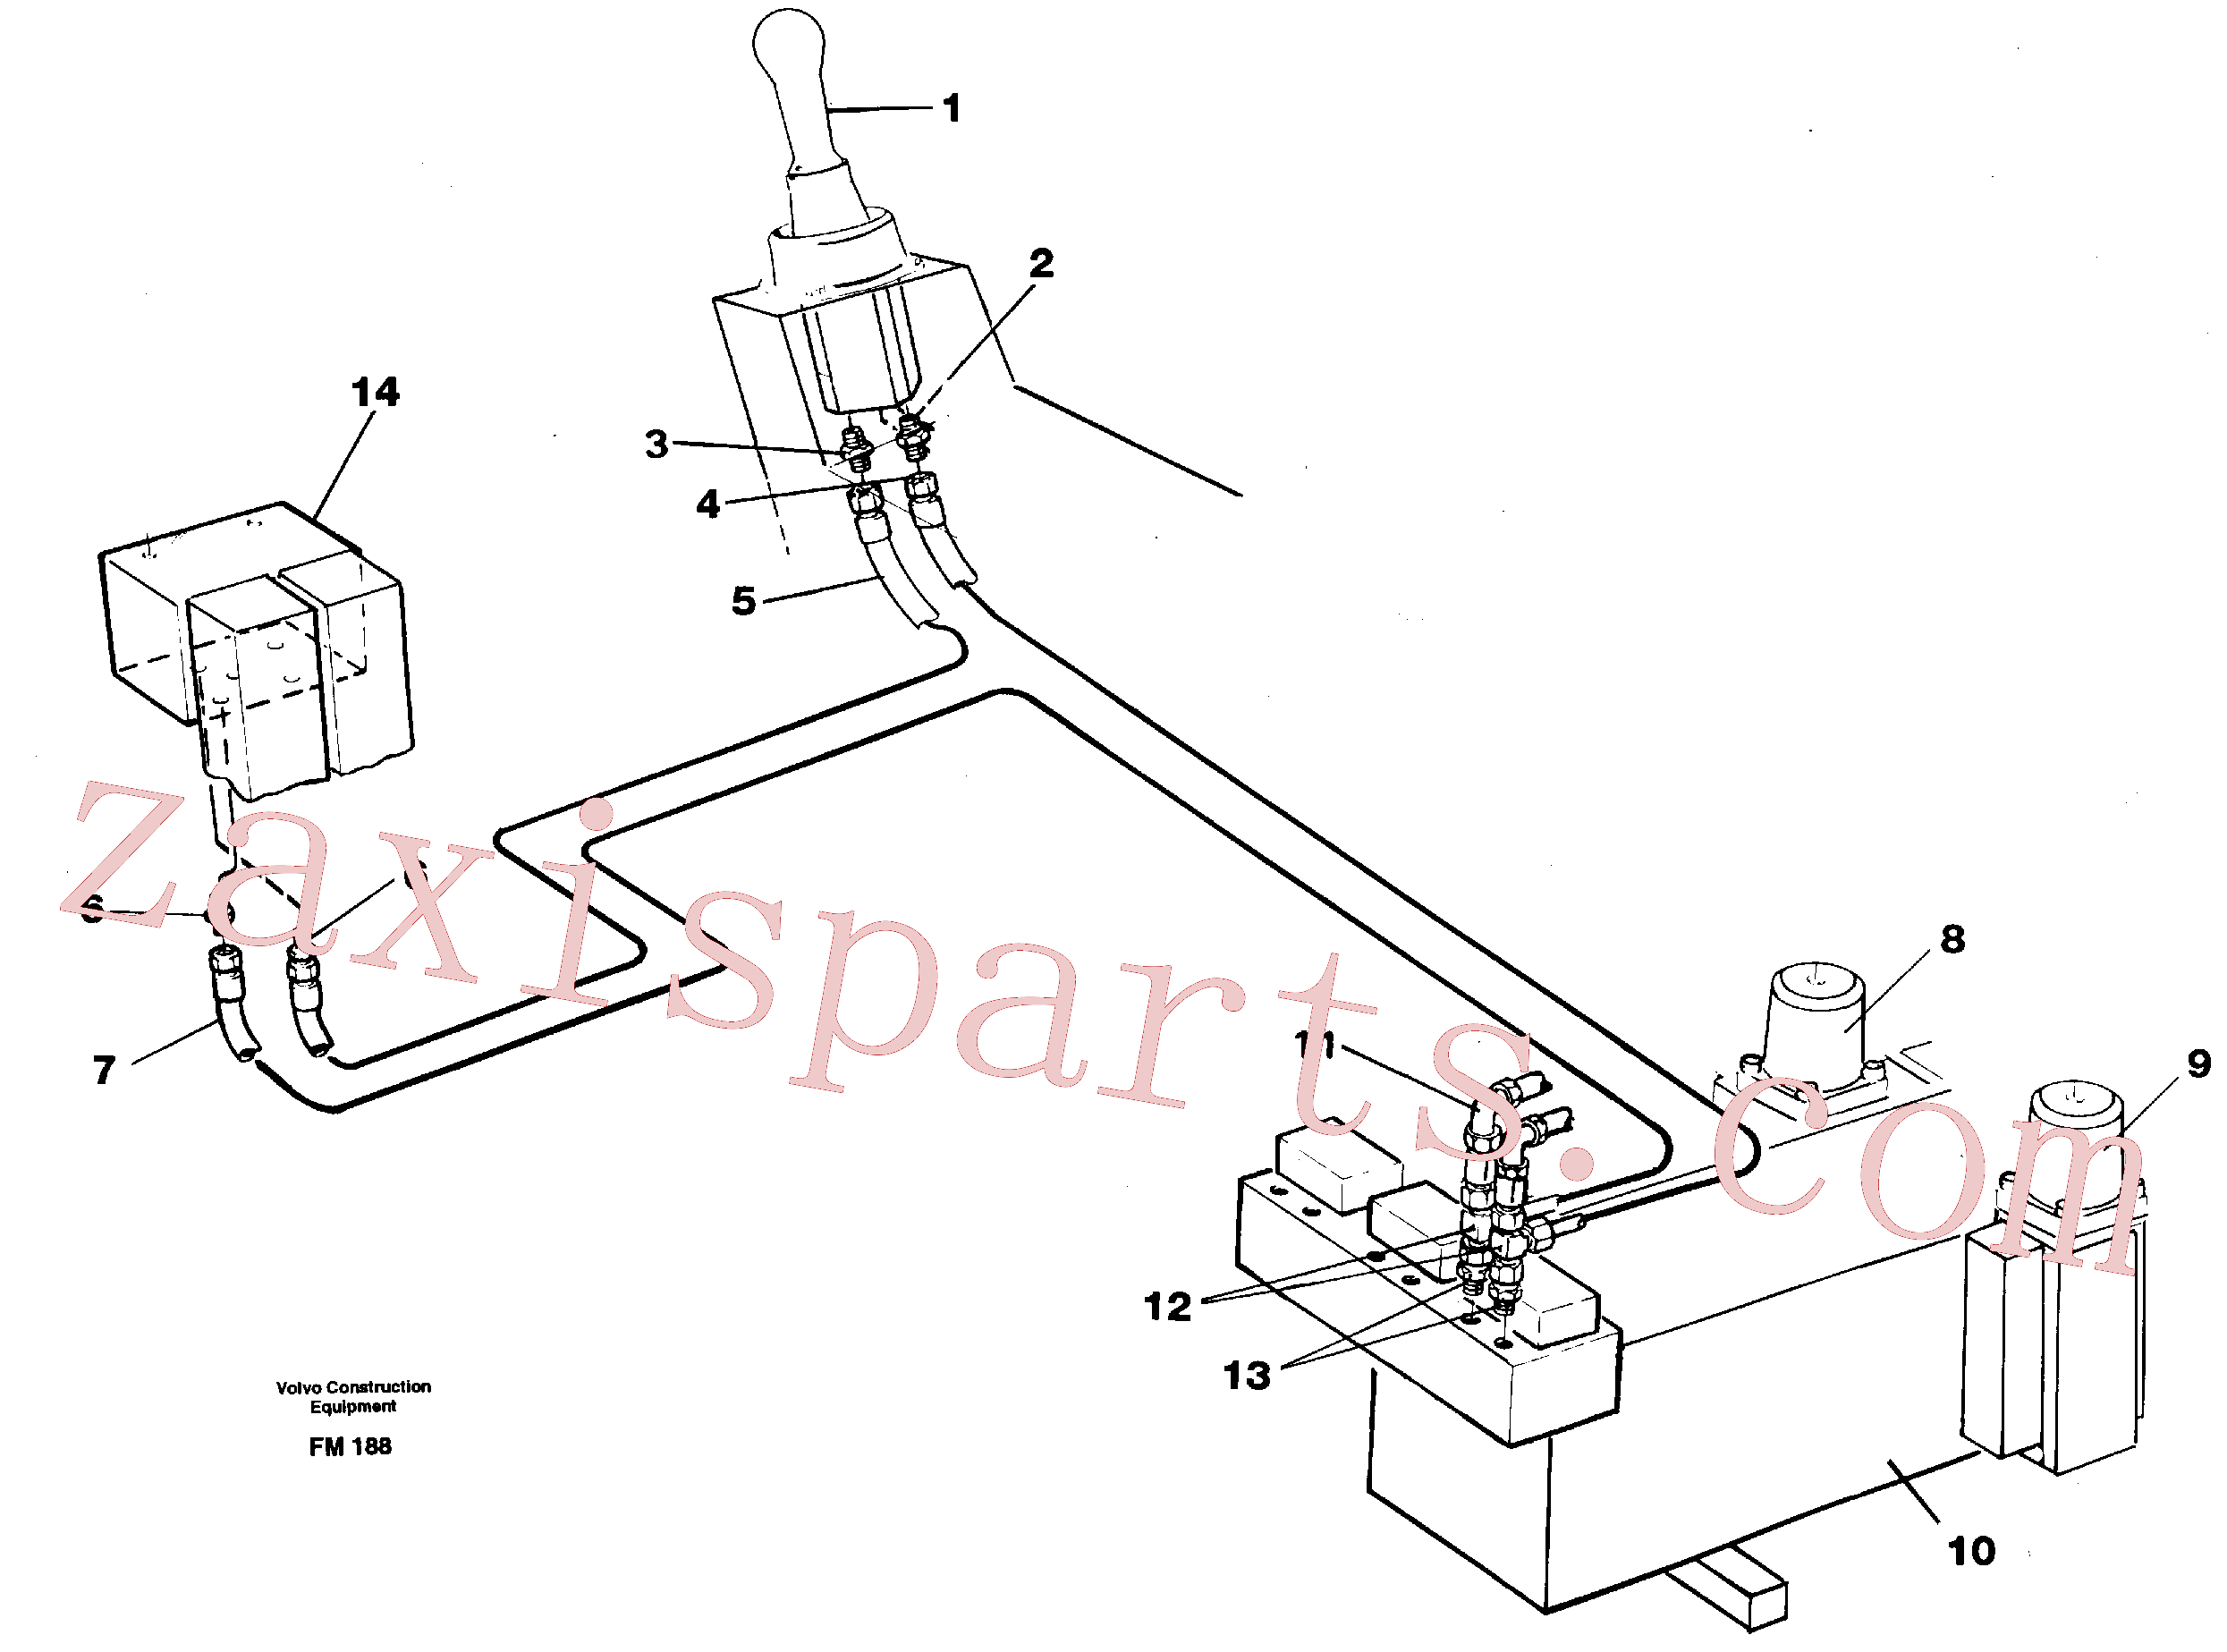 VOE14260323 for Volvo Servo hydraulics, dipper arm(FM188 assembly)